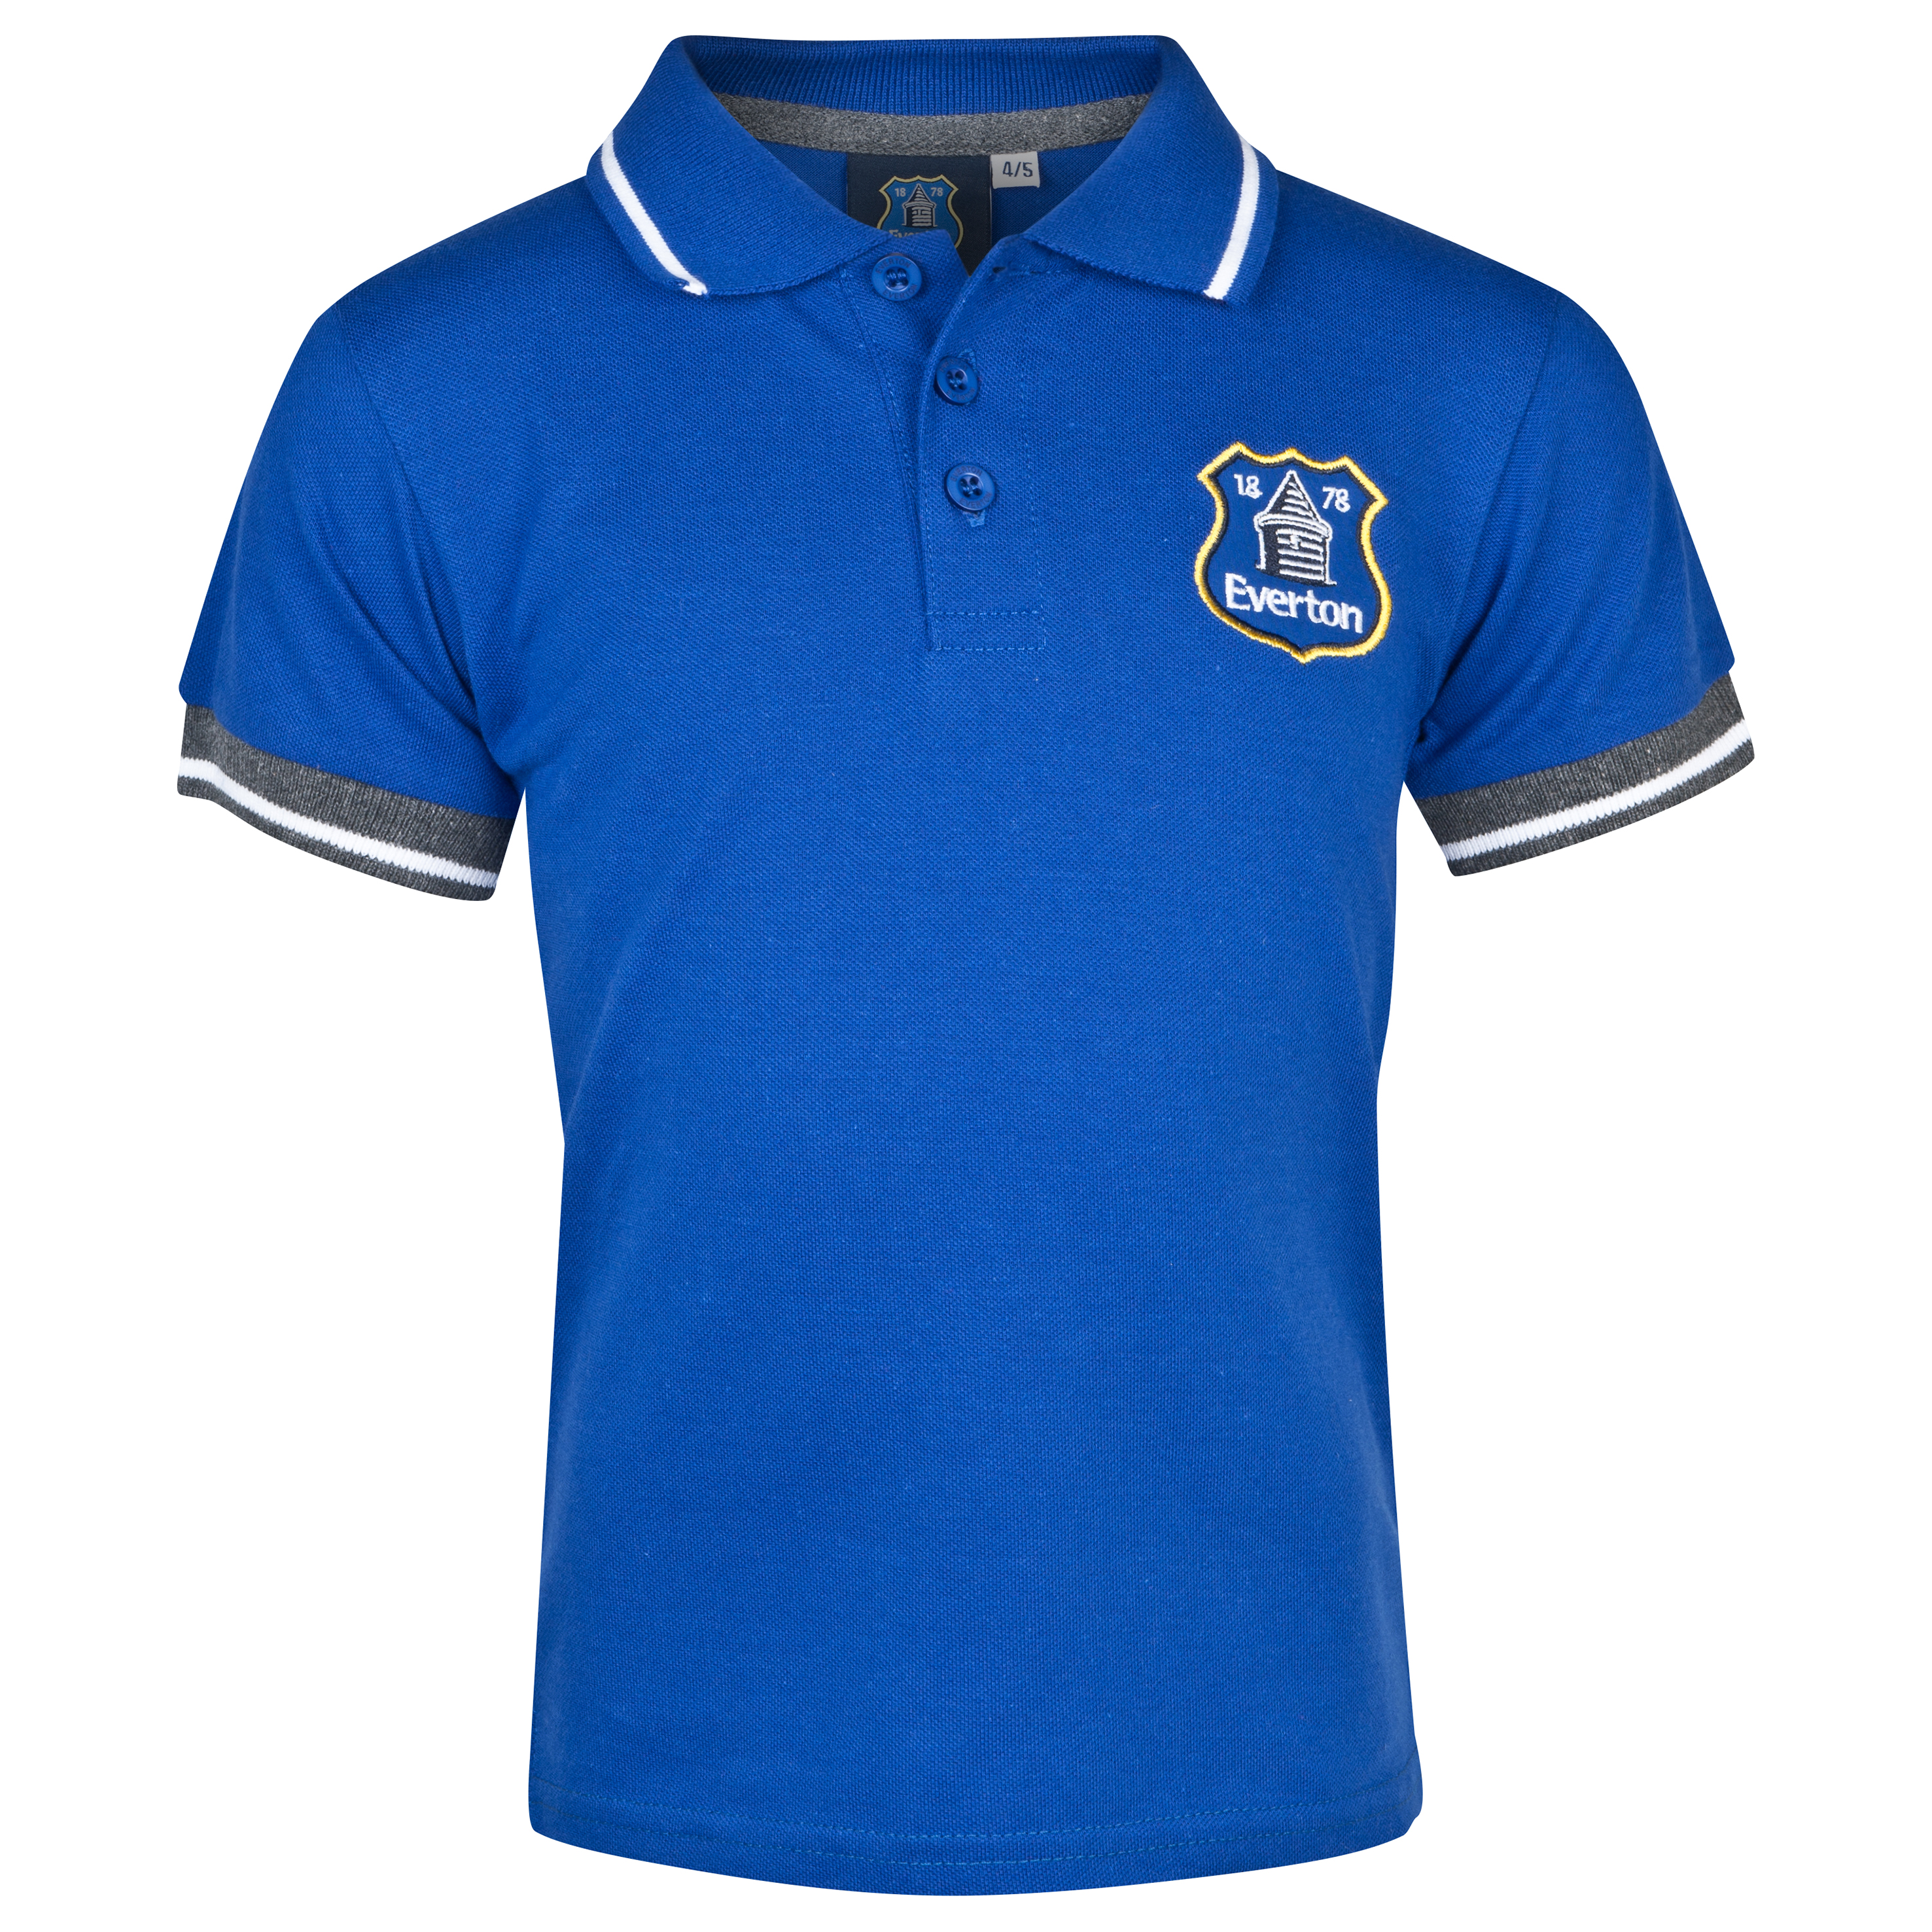 Everton Essentials Stadia Polo Shirt - Infant Boys Royal Blue